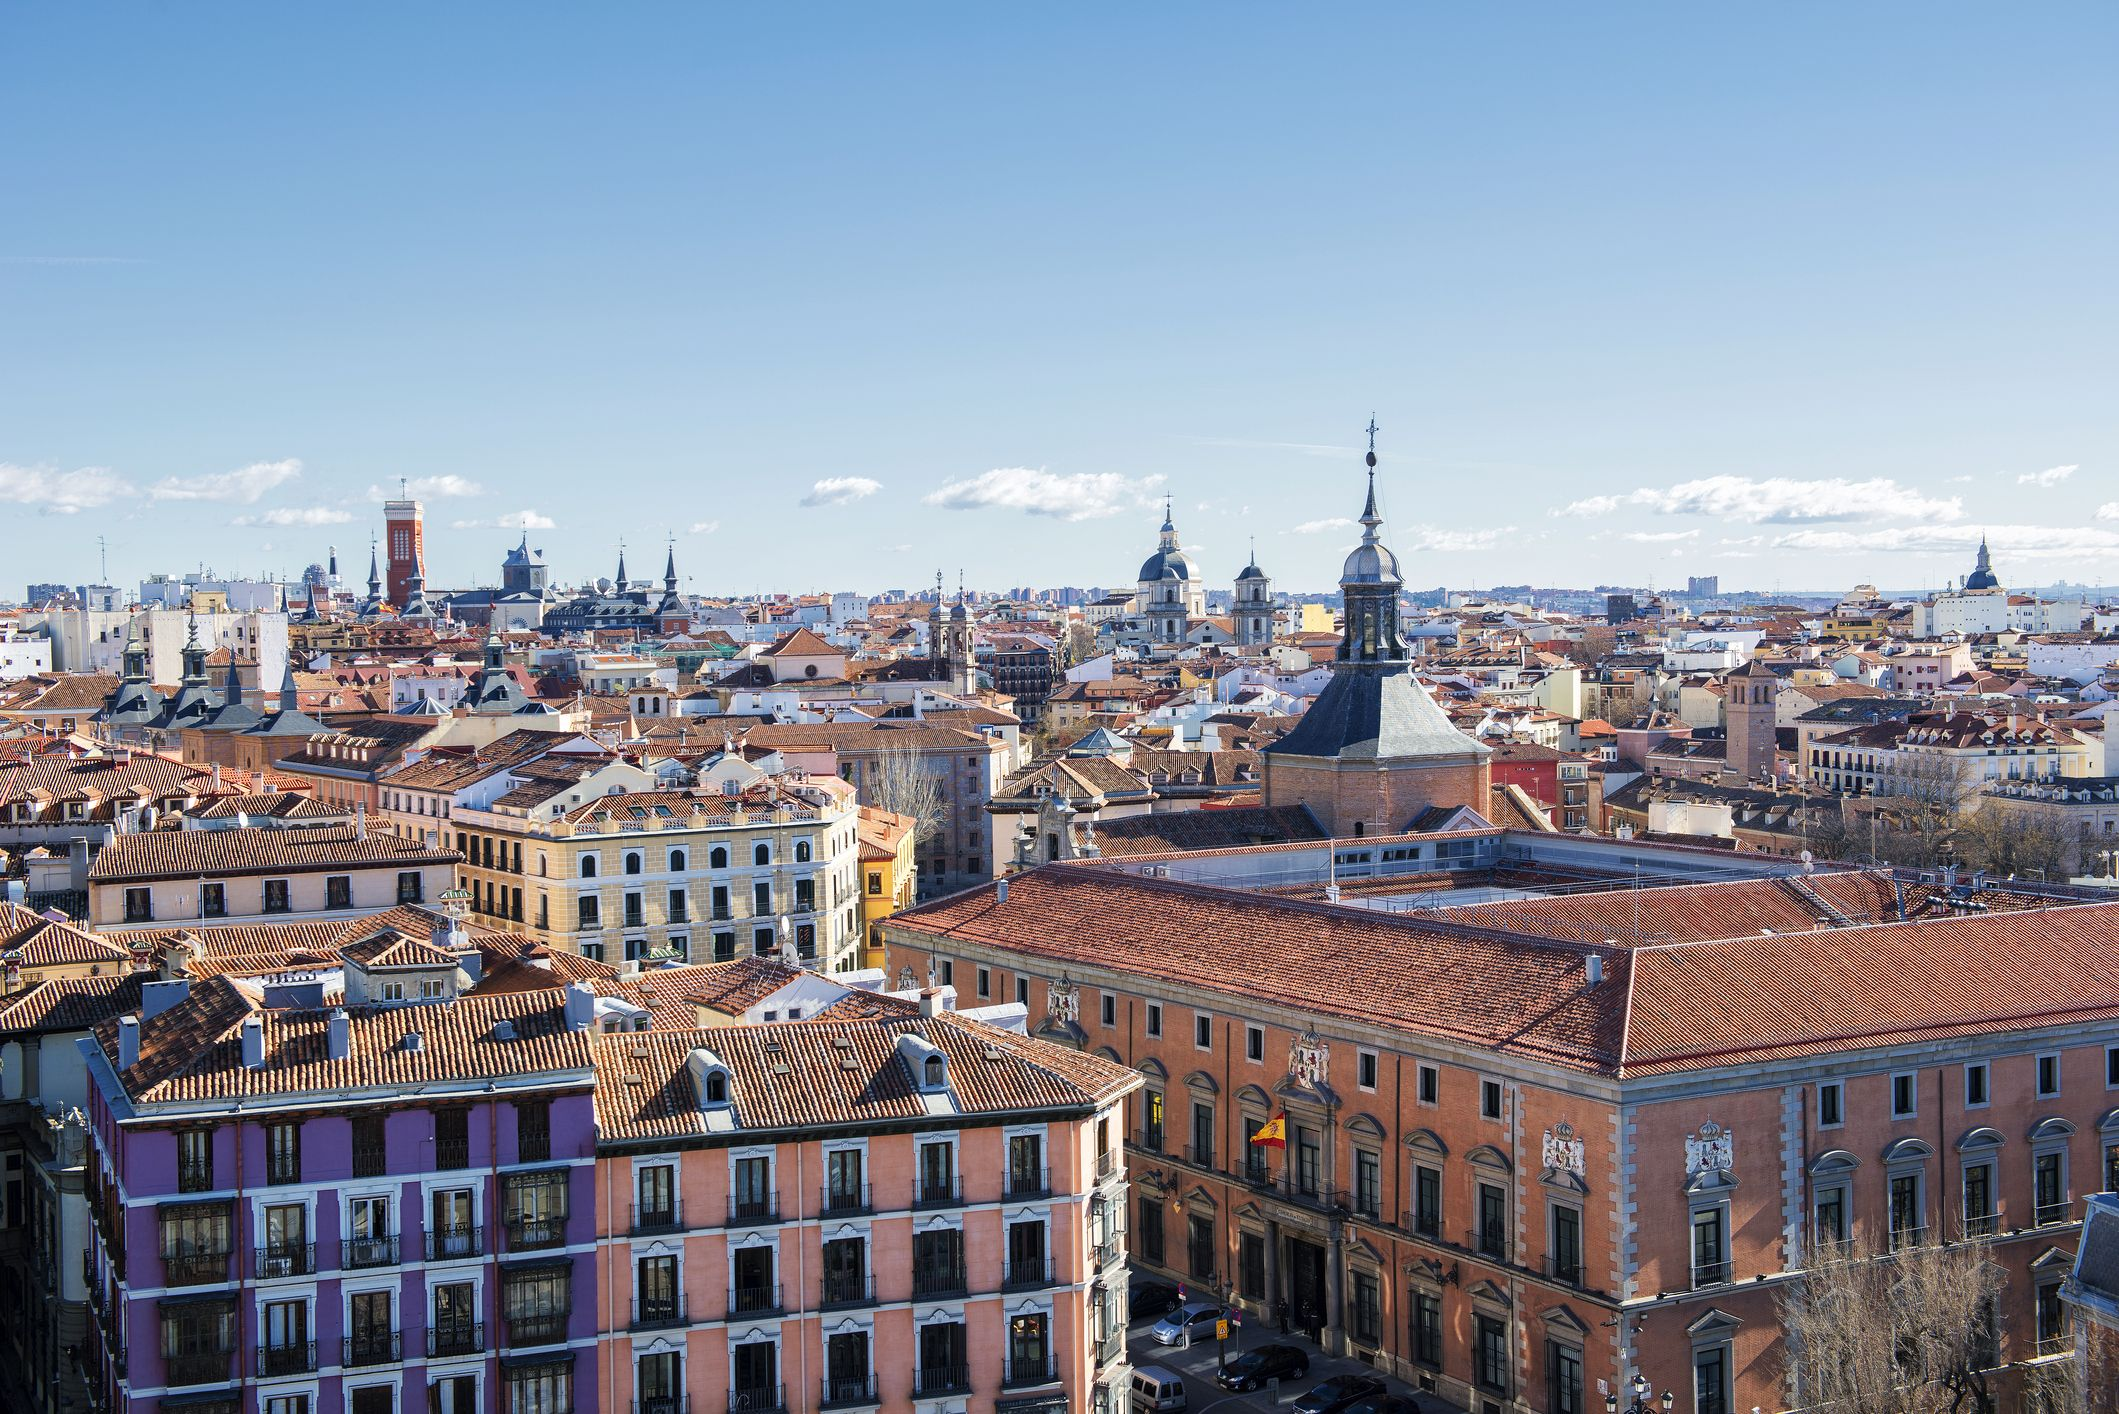 Revealed: Europe's top 10 cities for holidaying on a budget